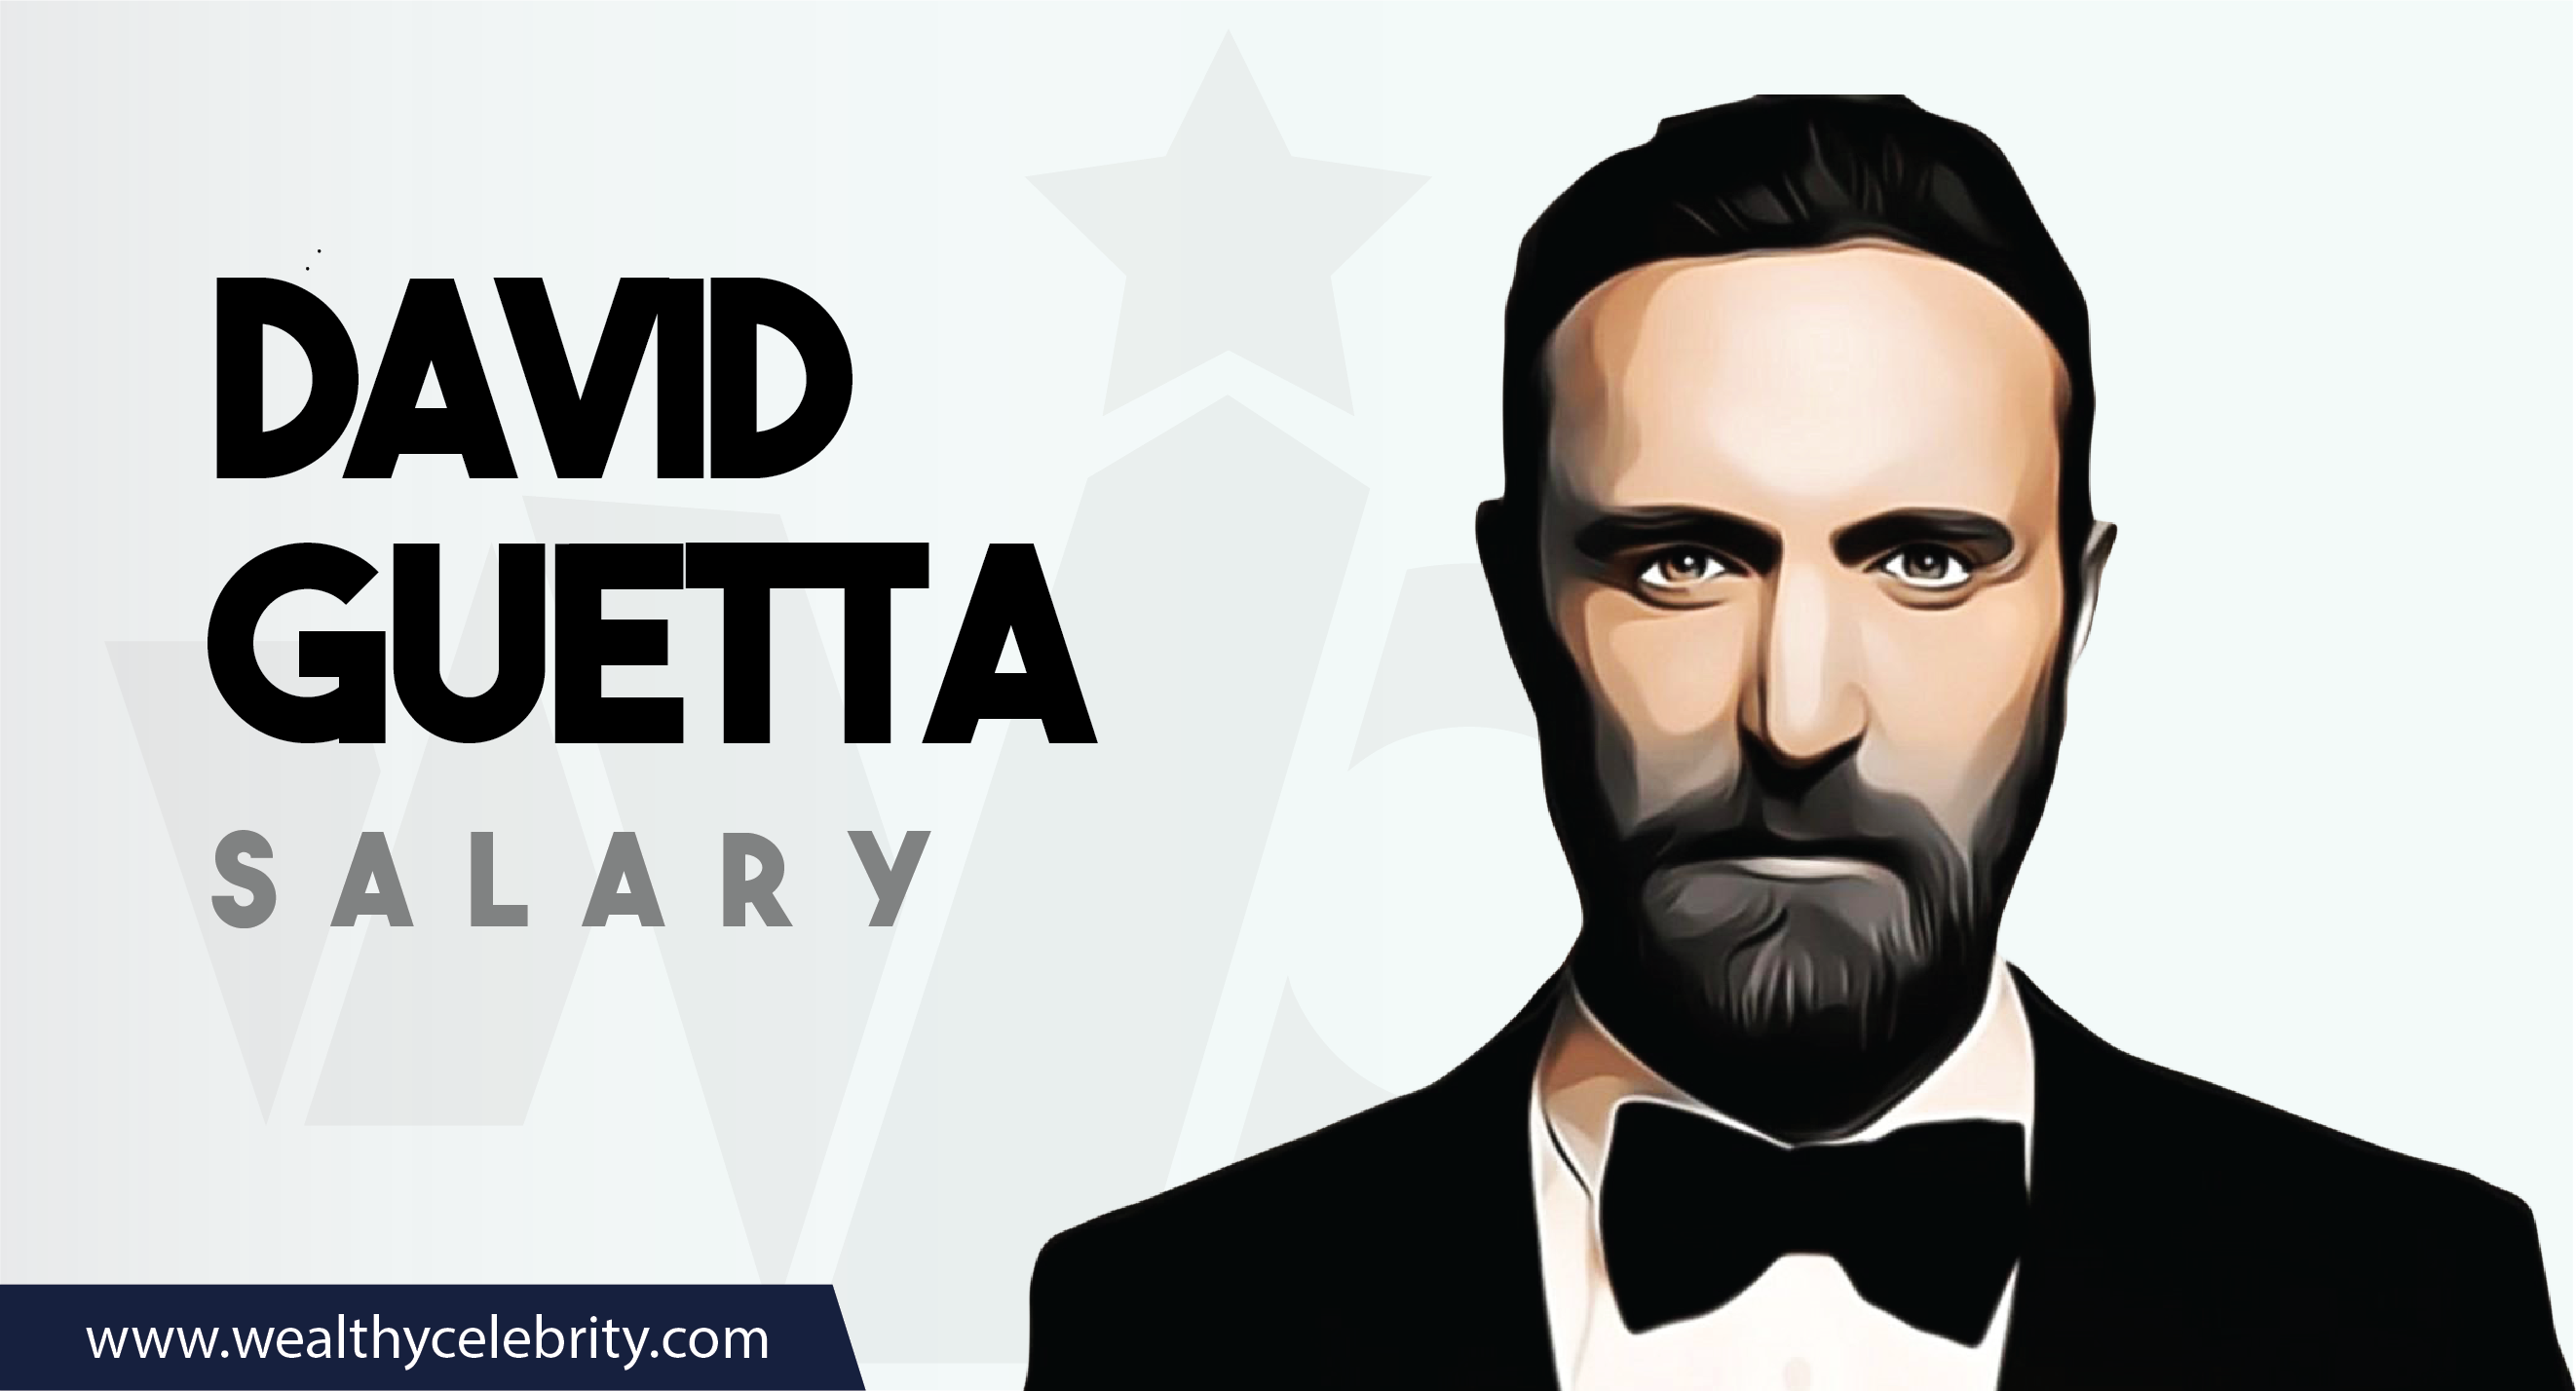 David Guetta DJ - Current Salary Net Worth